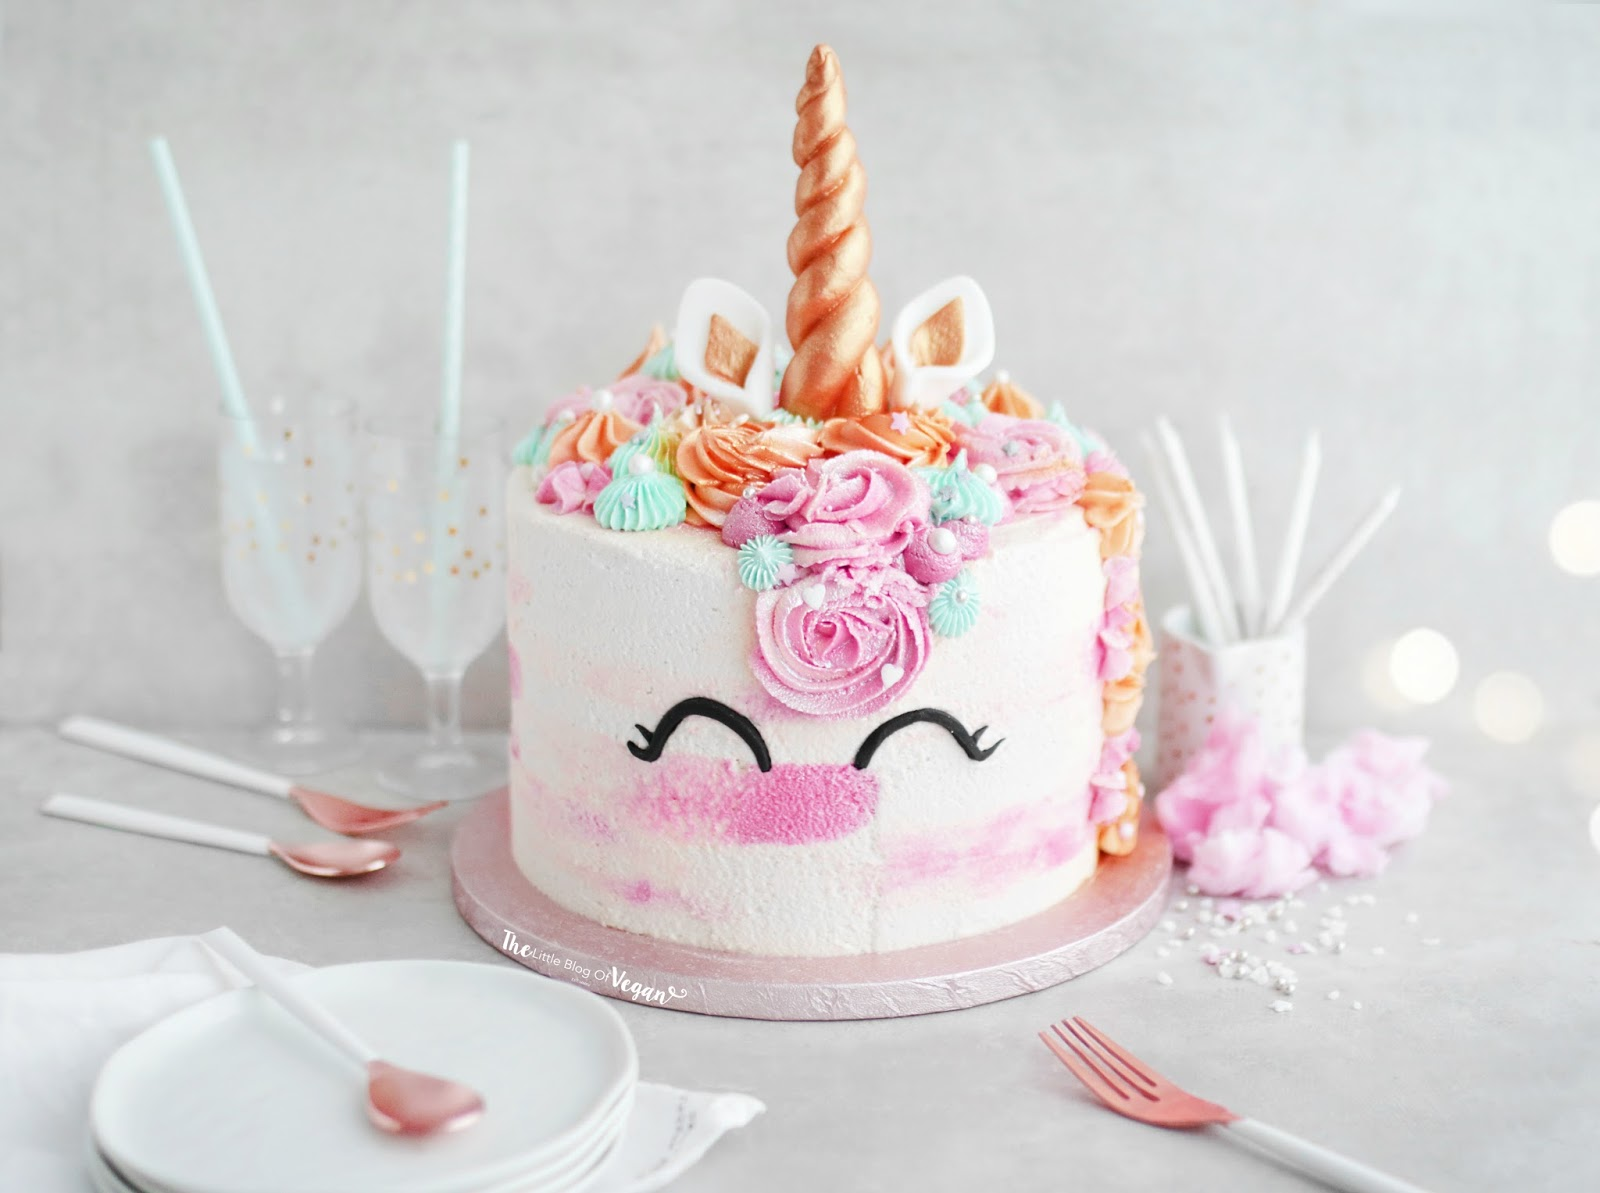 Fabulous Vegan Unicorn Cake Recipe The Little Blog Of Vegan Funny Birthday Cards Online Inifodamsfinfo